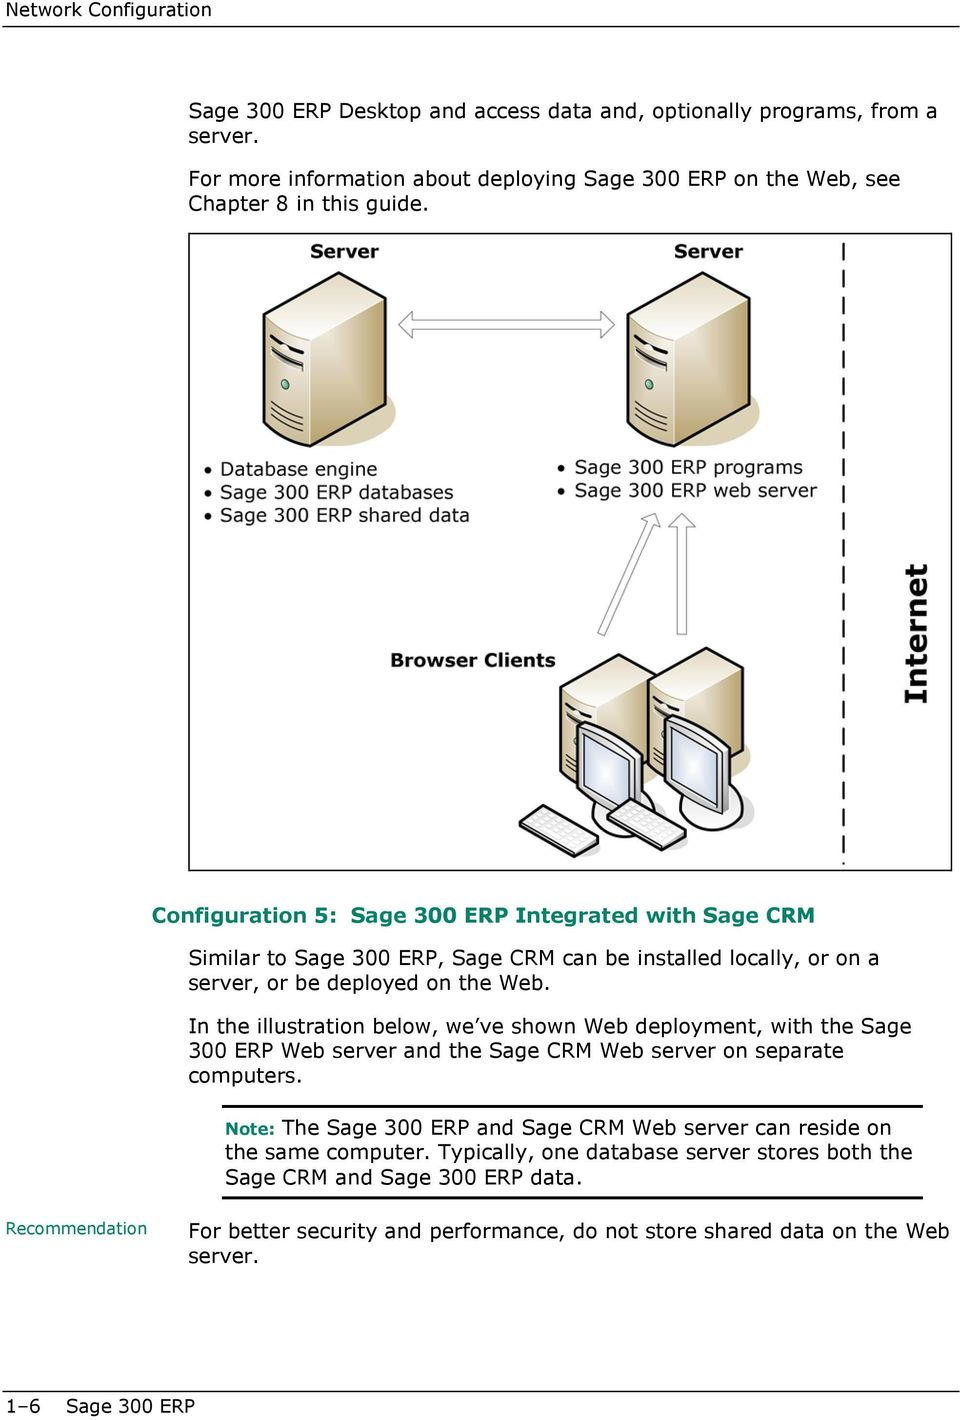 In the illustration below, we ve shown Web deployment, with the Sage 300 ERP Web server and the Sage CRM Web server on separate computers.